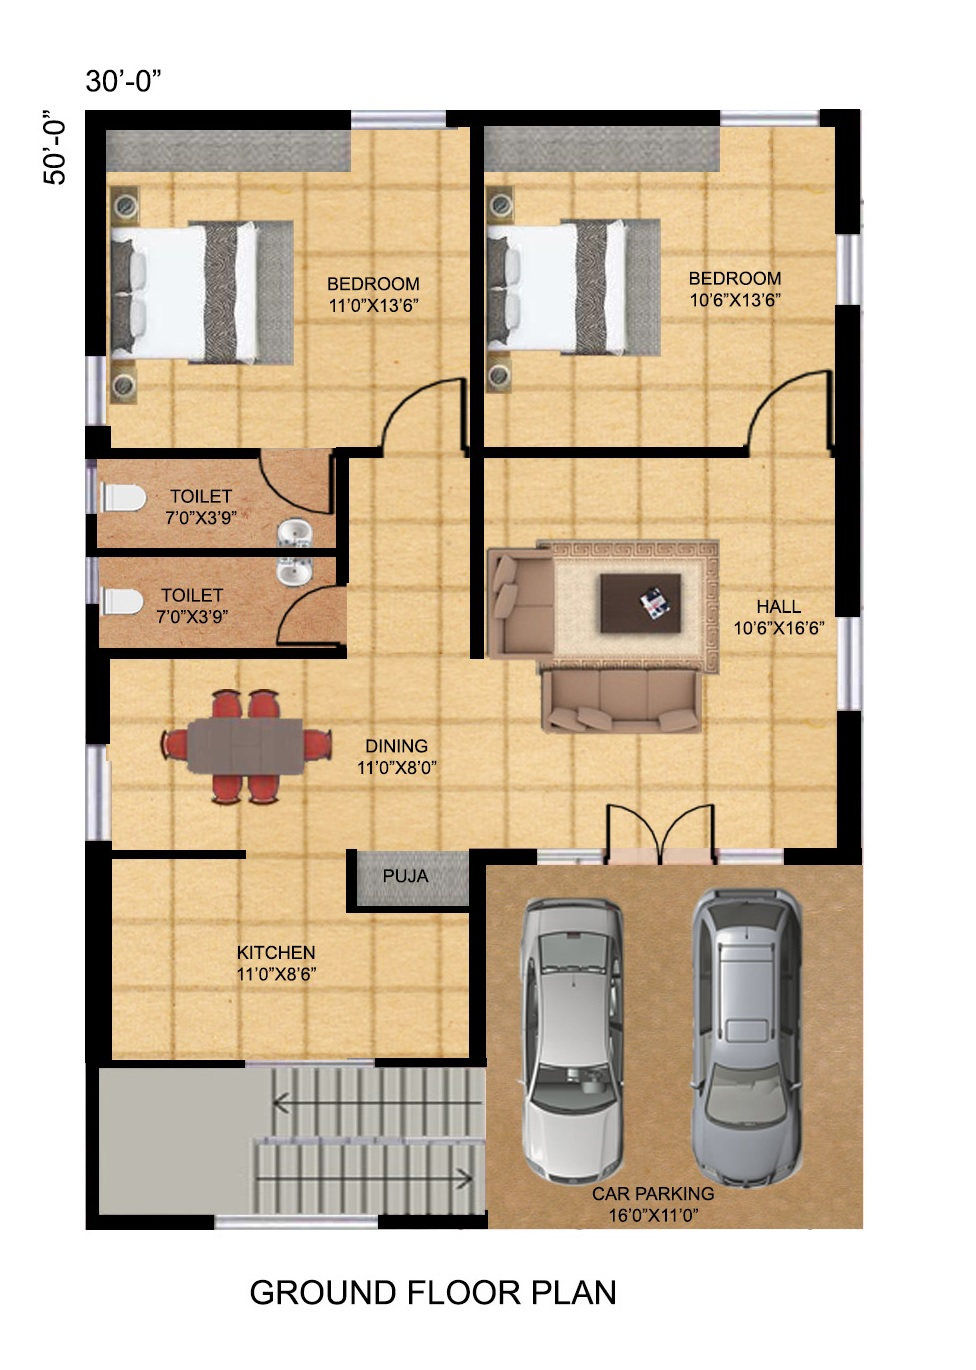 Sir please send north facing house planning diagram as per vasthu 2 bhk pooja ro Kitchen design tips as per vastu